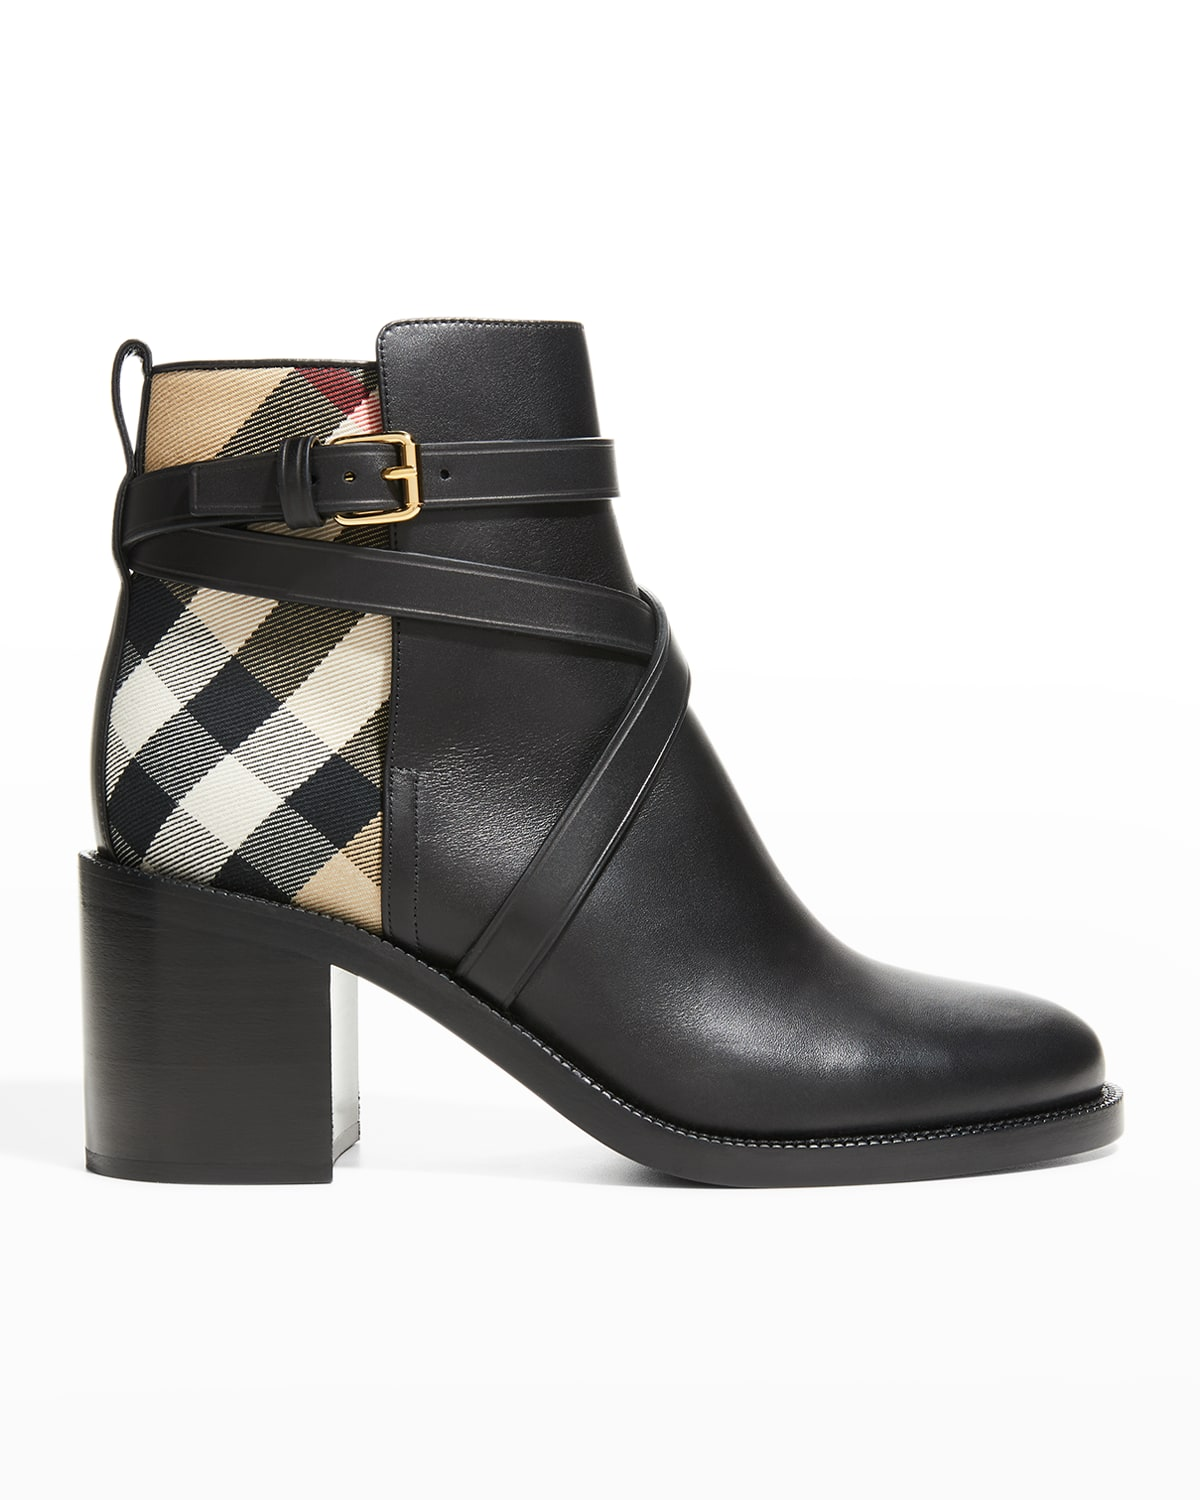 Pryle House Check Leather Ankle Booties